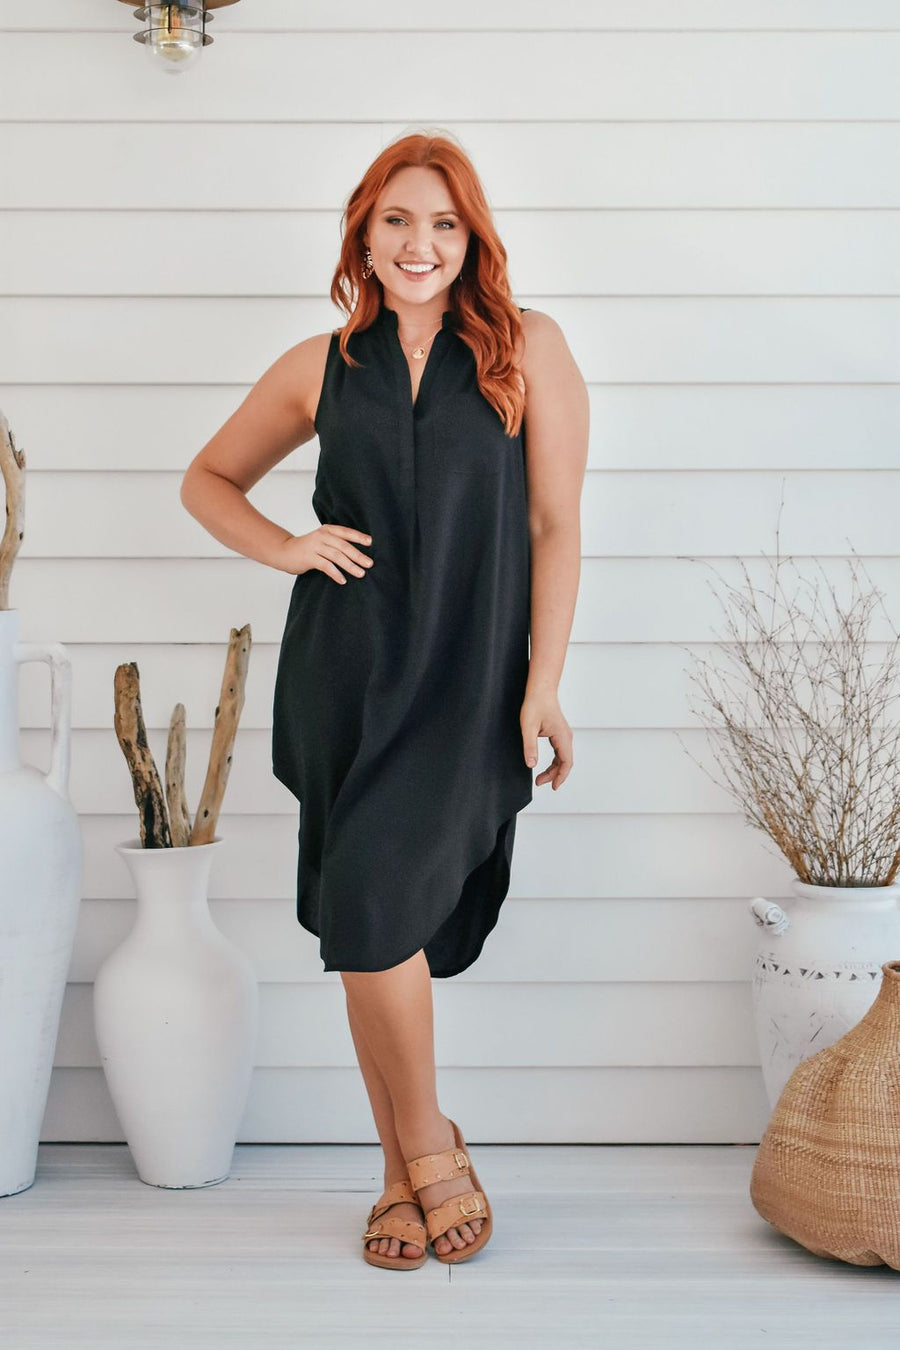 Addi Shirt Dress | Black DRESS Gray Label